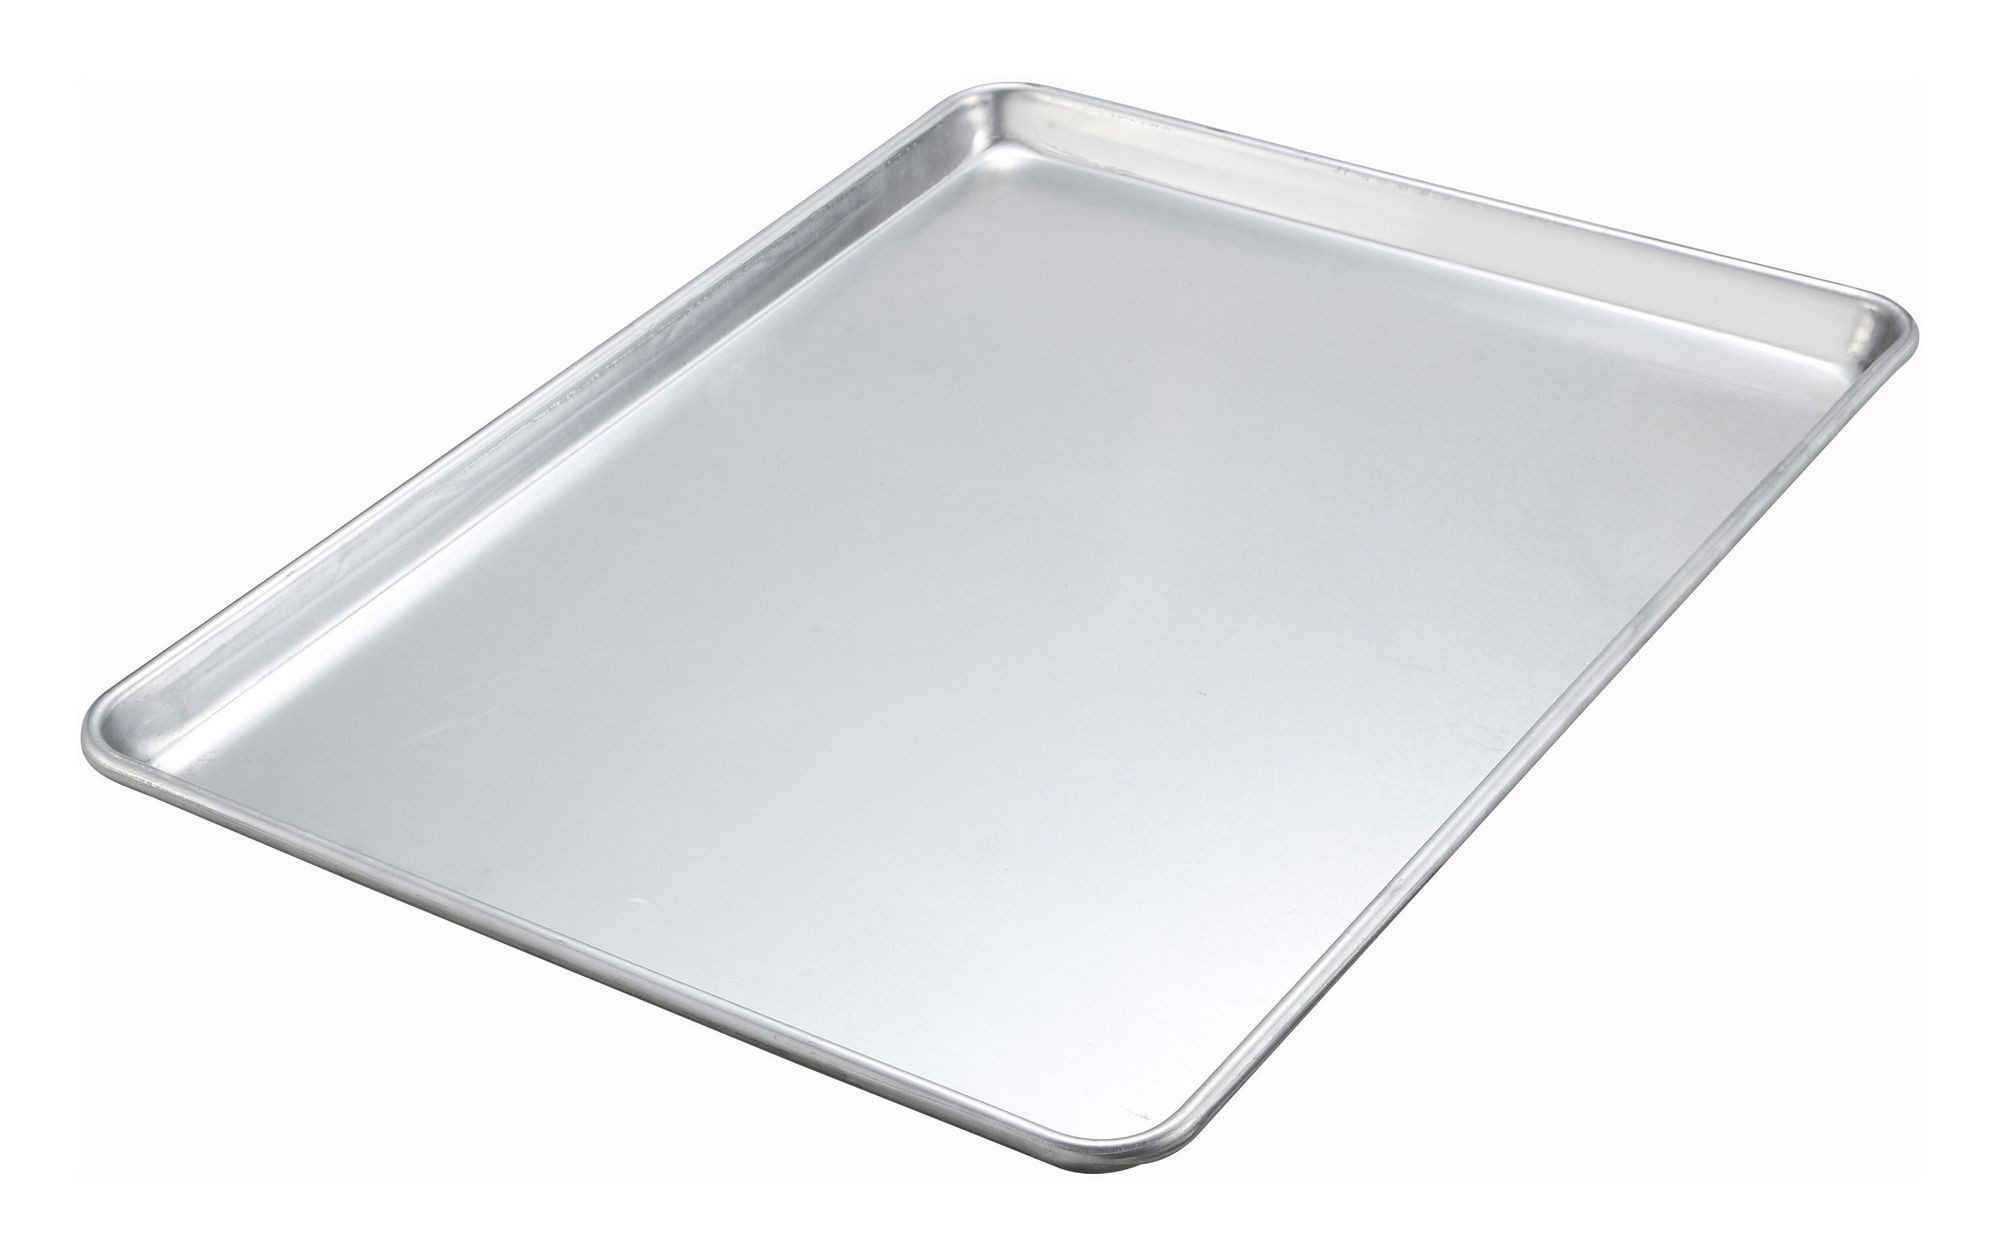 Two-Third Size 18-Gauge Aluminum Sheet Pan, 16